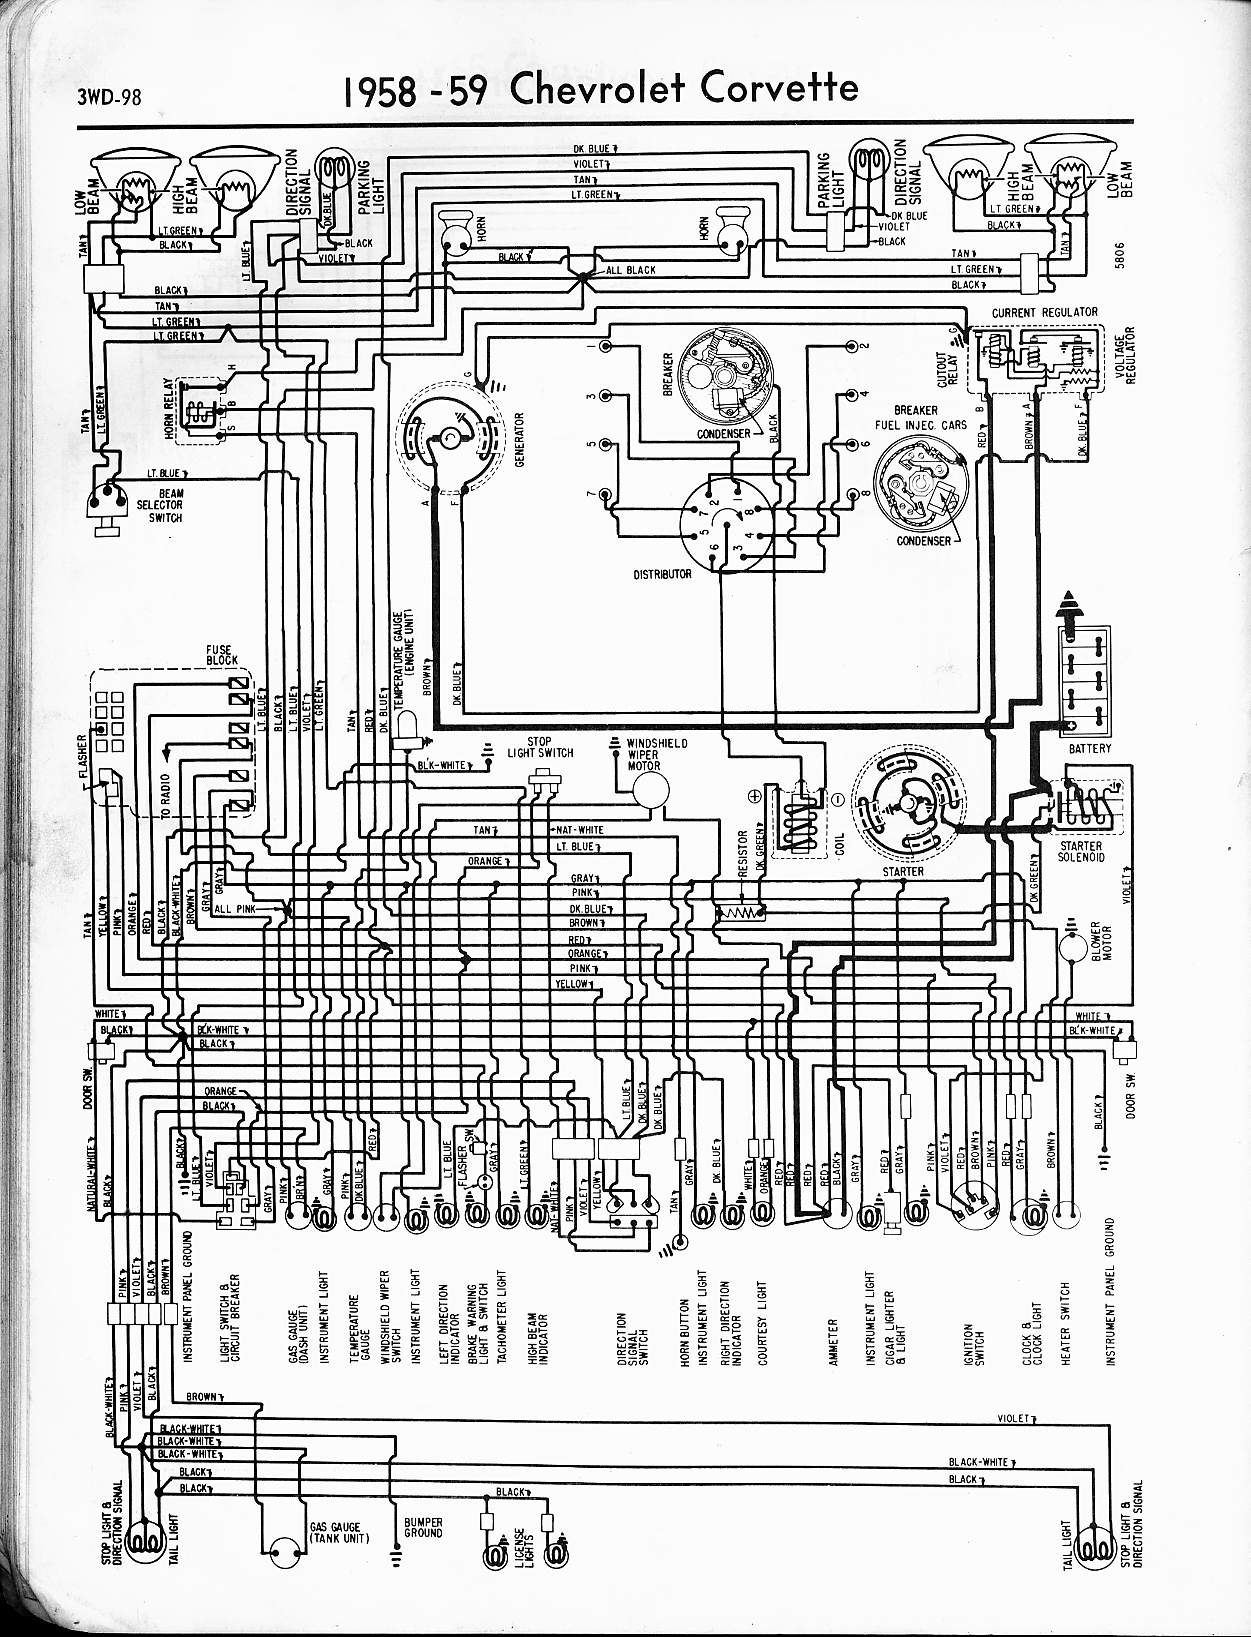 MWireChev58_3WD 098 100 [ car ignition wiring diagram ] affordable nice 1968 1960 corvette wiring diagram at panicattacktreatment.co